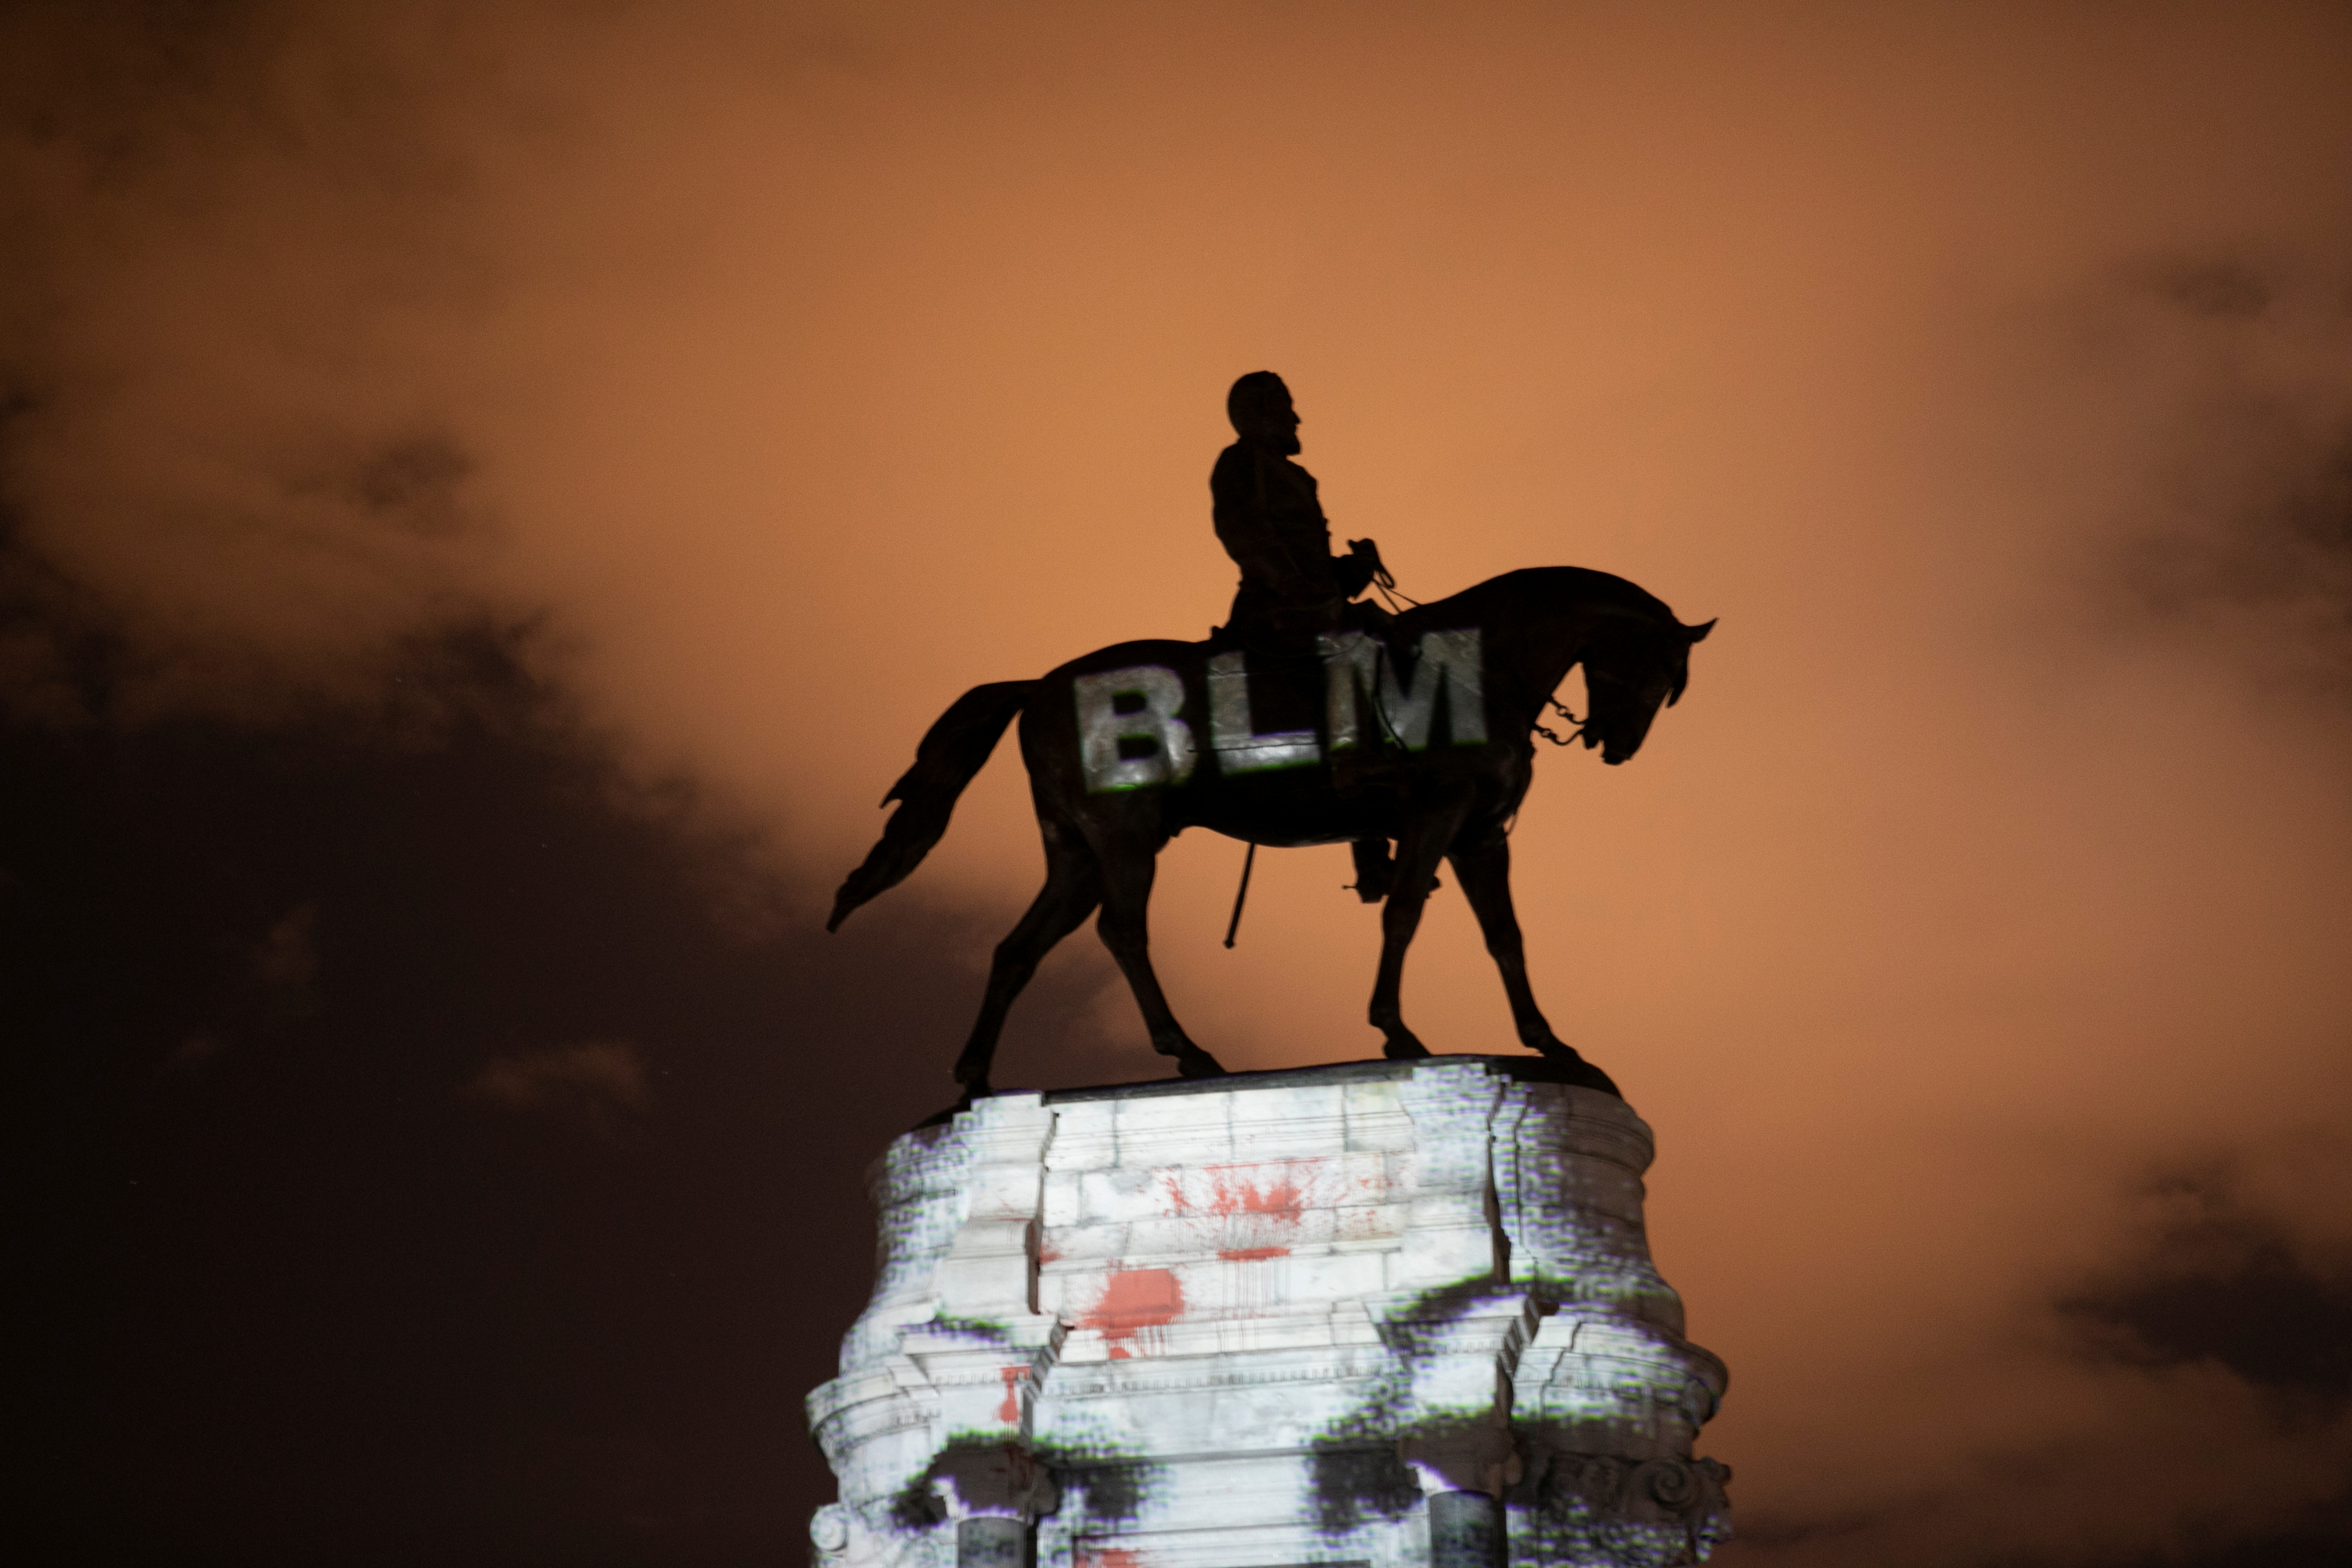 Artist Dustin Klein projects a Black Lives Matter image onto the statue of Confederate General Robert E. Lee in Richmond, Virginia, U.S. June 18, 2020. REUTERS/Julia Rendleman